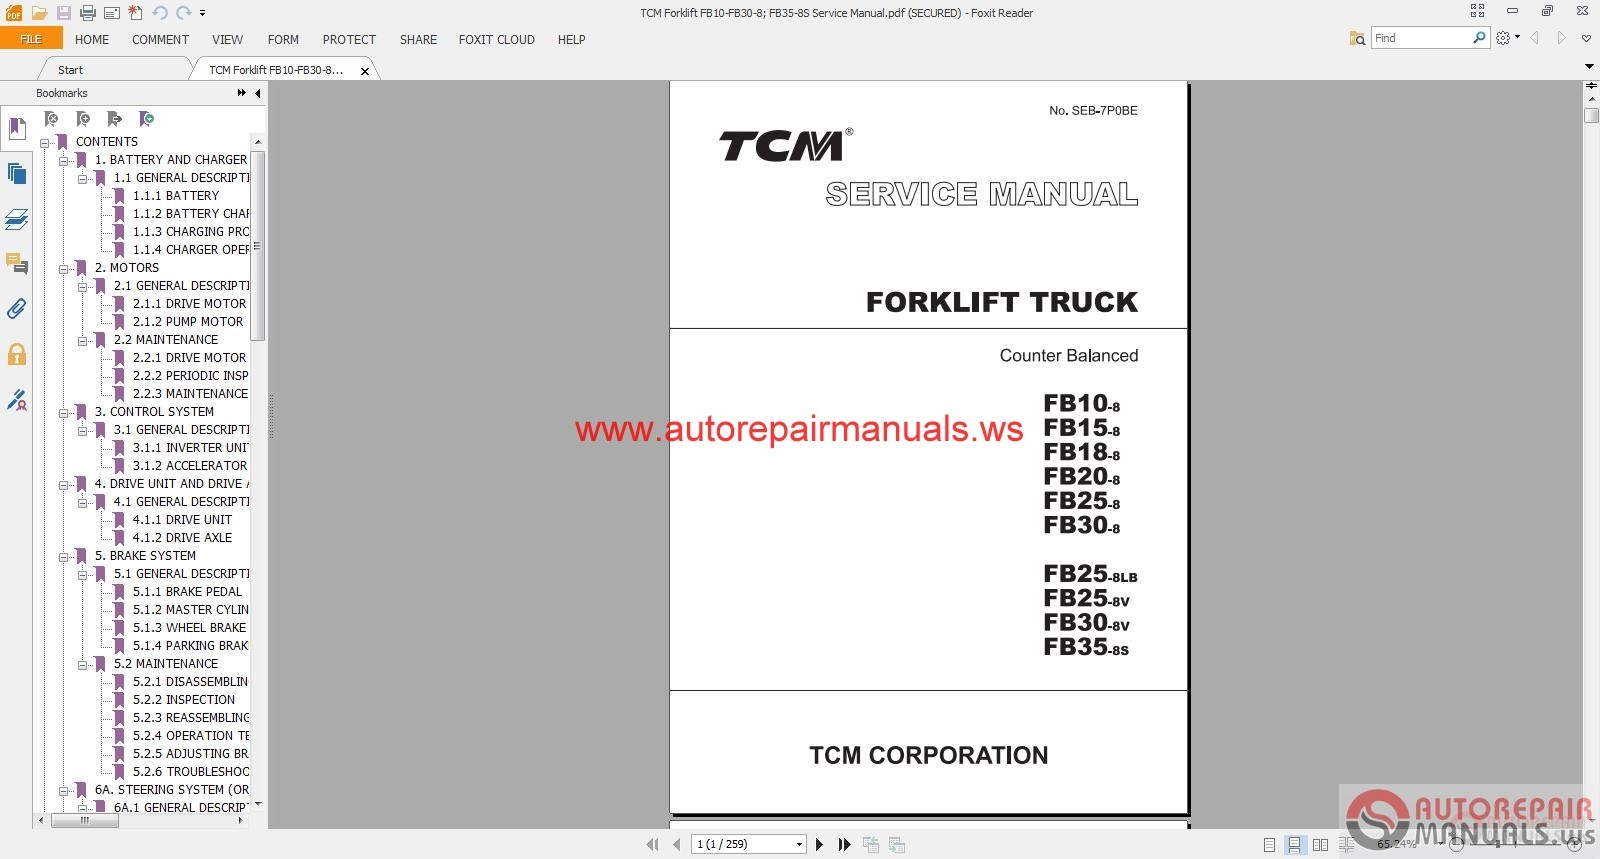 tcm forklift fb10 fb30 8 fb35 8s service manual auto repair rh autorepairmanuals ws tcm forklift alternator wiring diagram tcm electric forklift wiring diagram